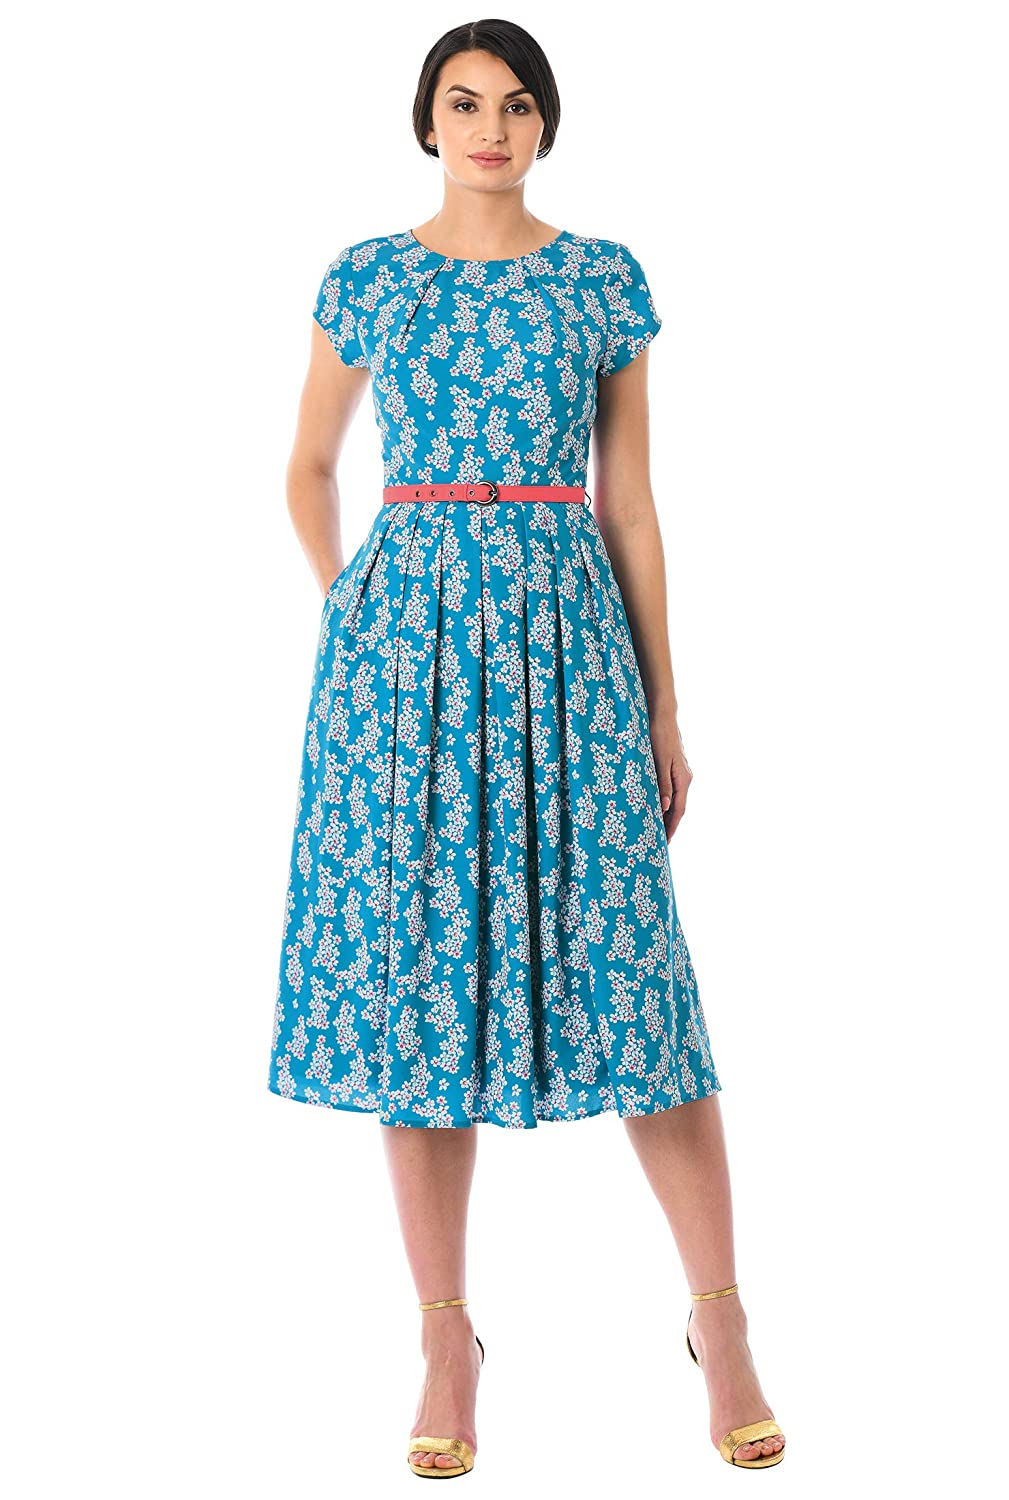 1950s Housewife Dress | 50s Day Dresses eShakti FX Pleat Neck Belted Floral Print Crepe Dress $64.95 AT vintagedancer.com